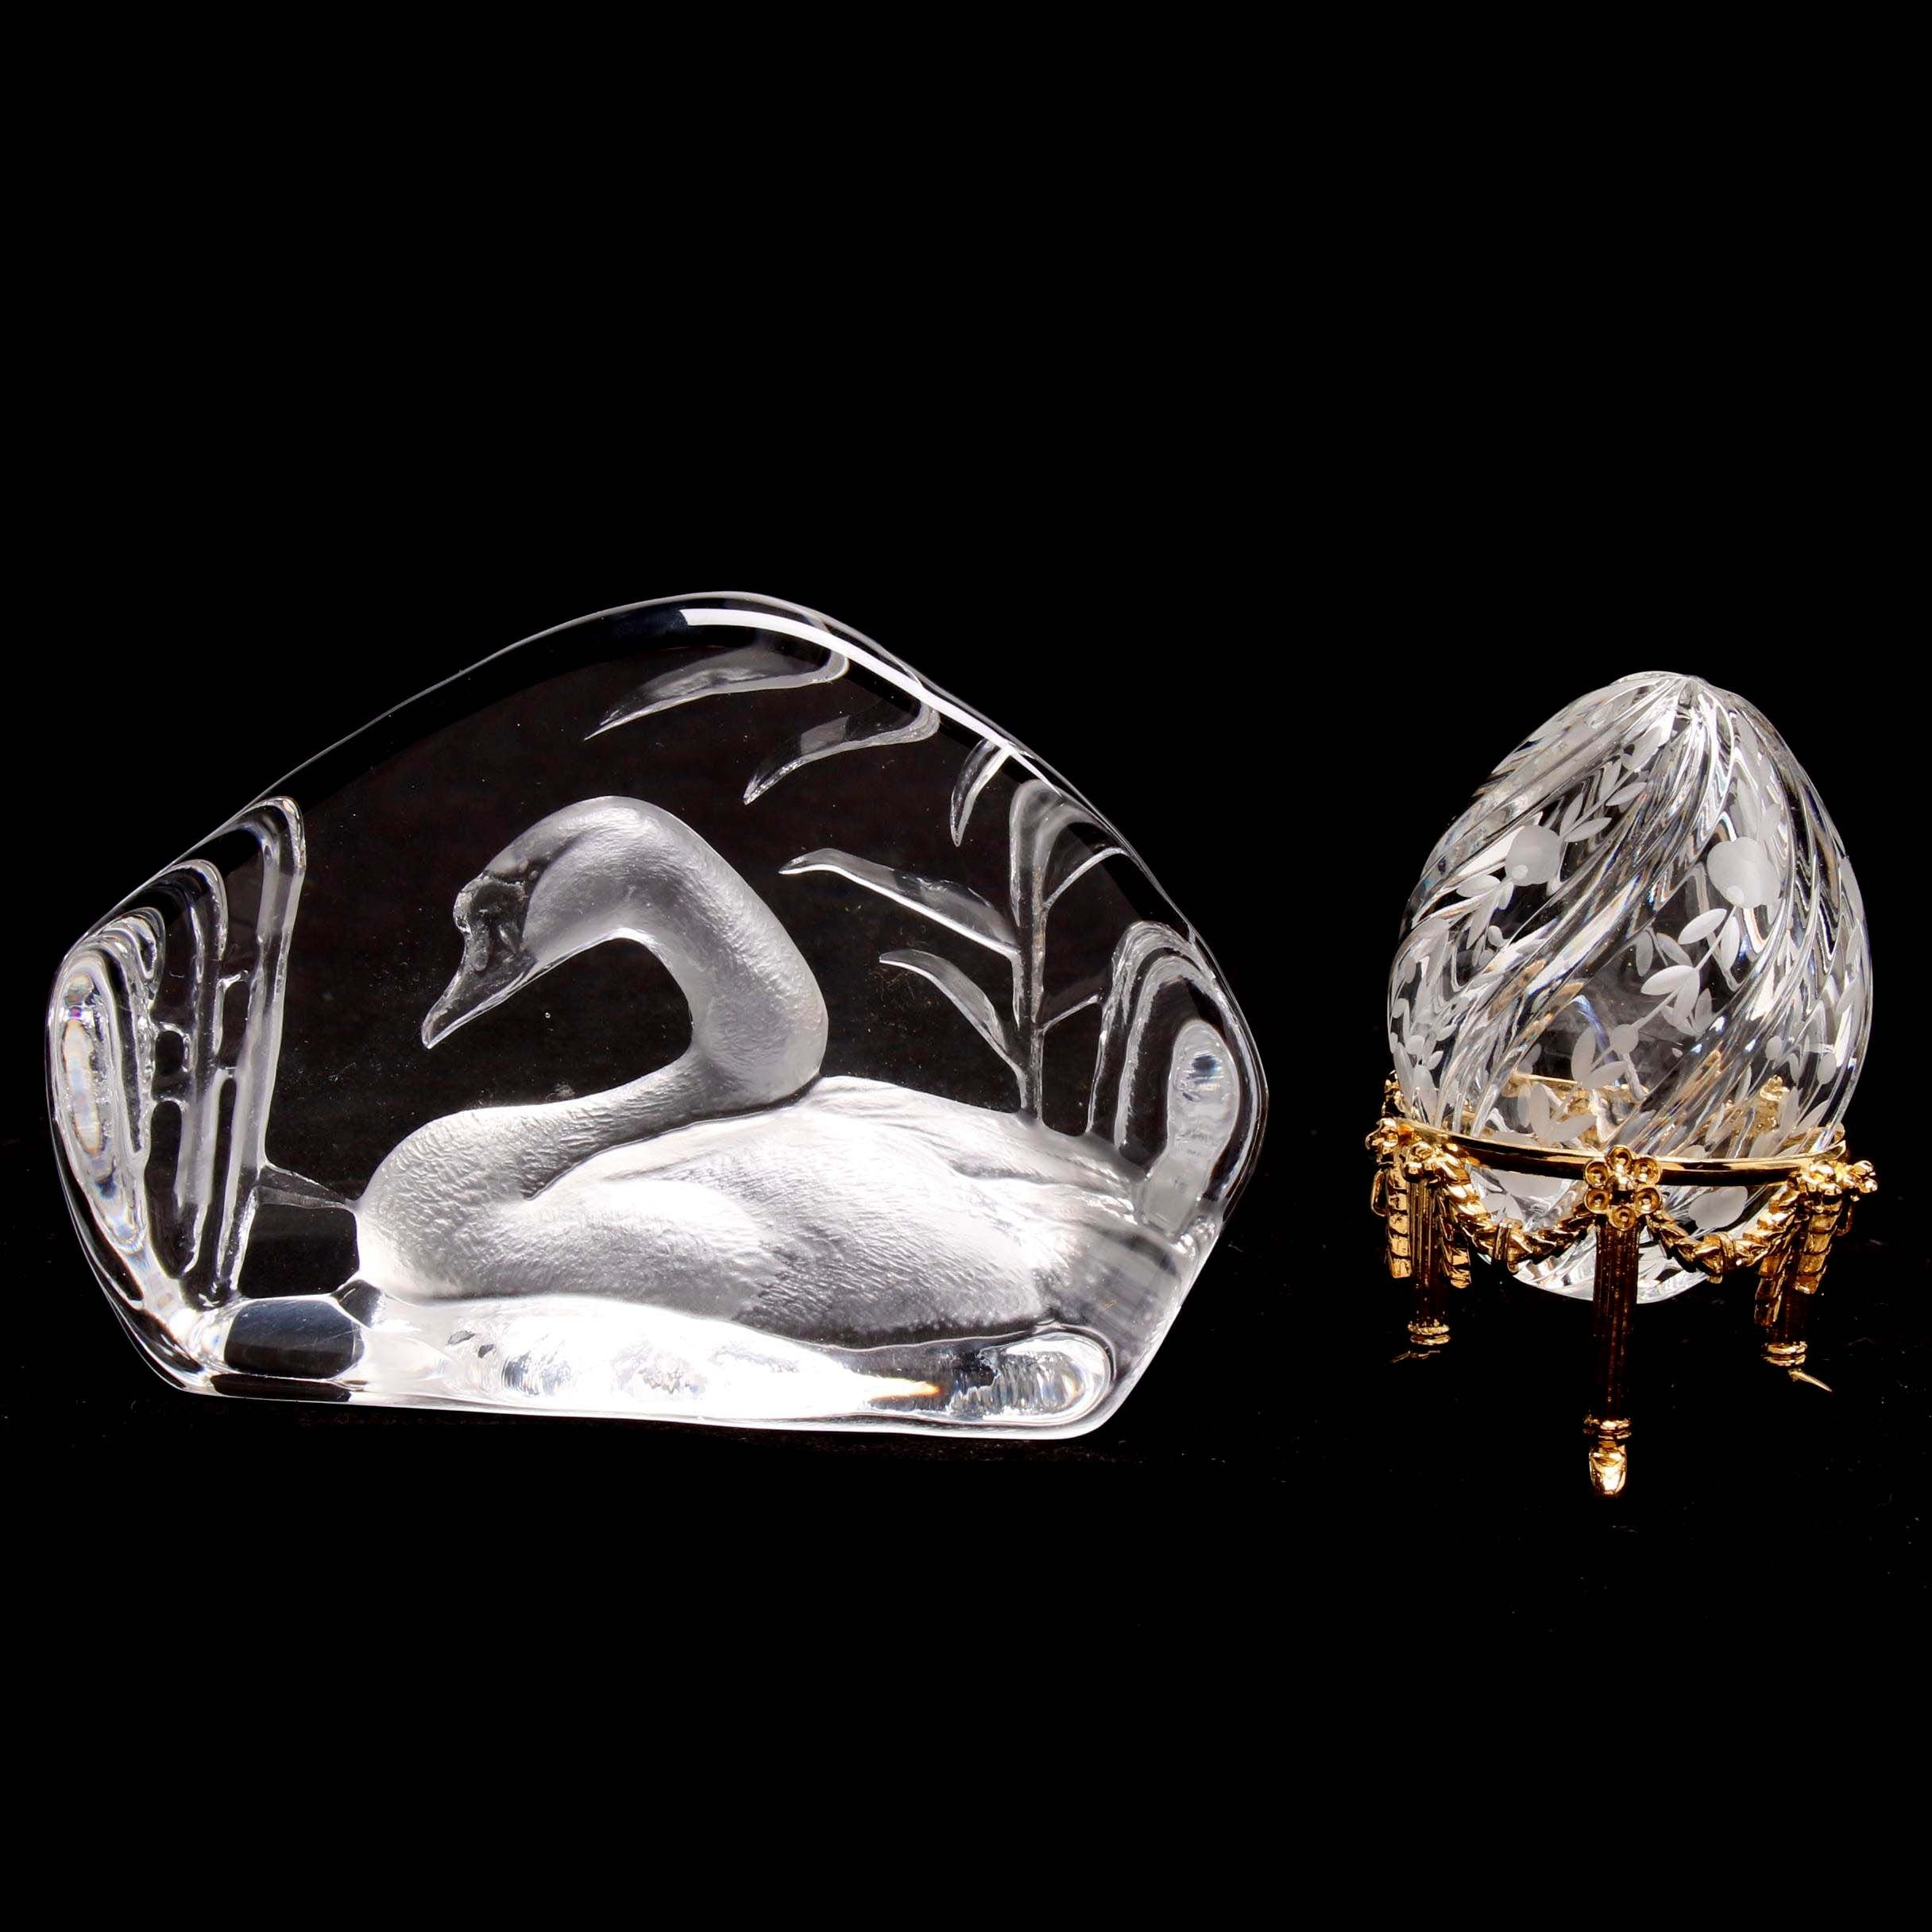 Etched Crystal Fabergé Egg with Stand and Mats Jonasson Crystal Paperweight